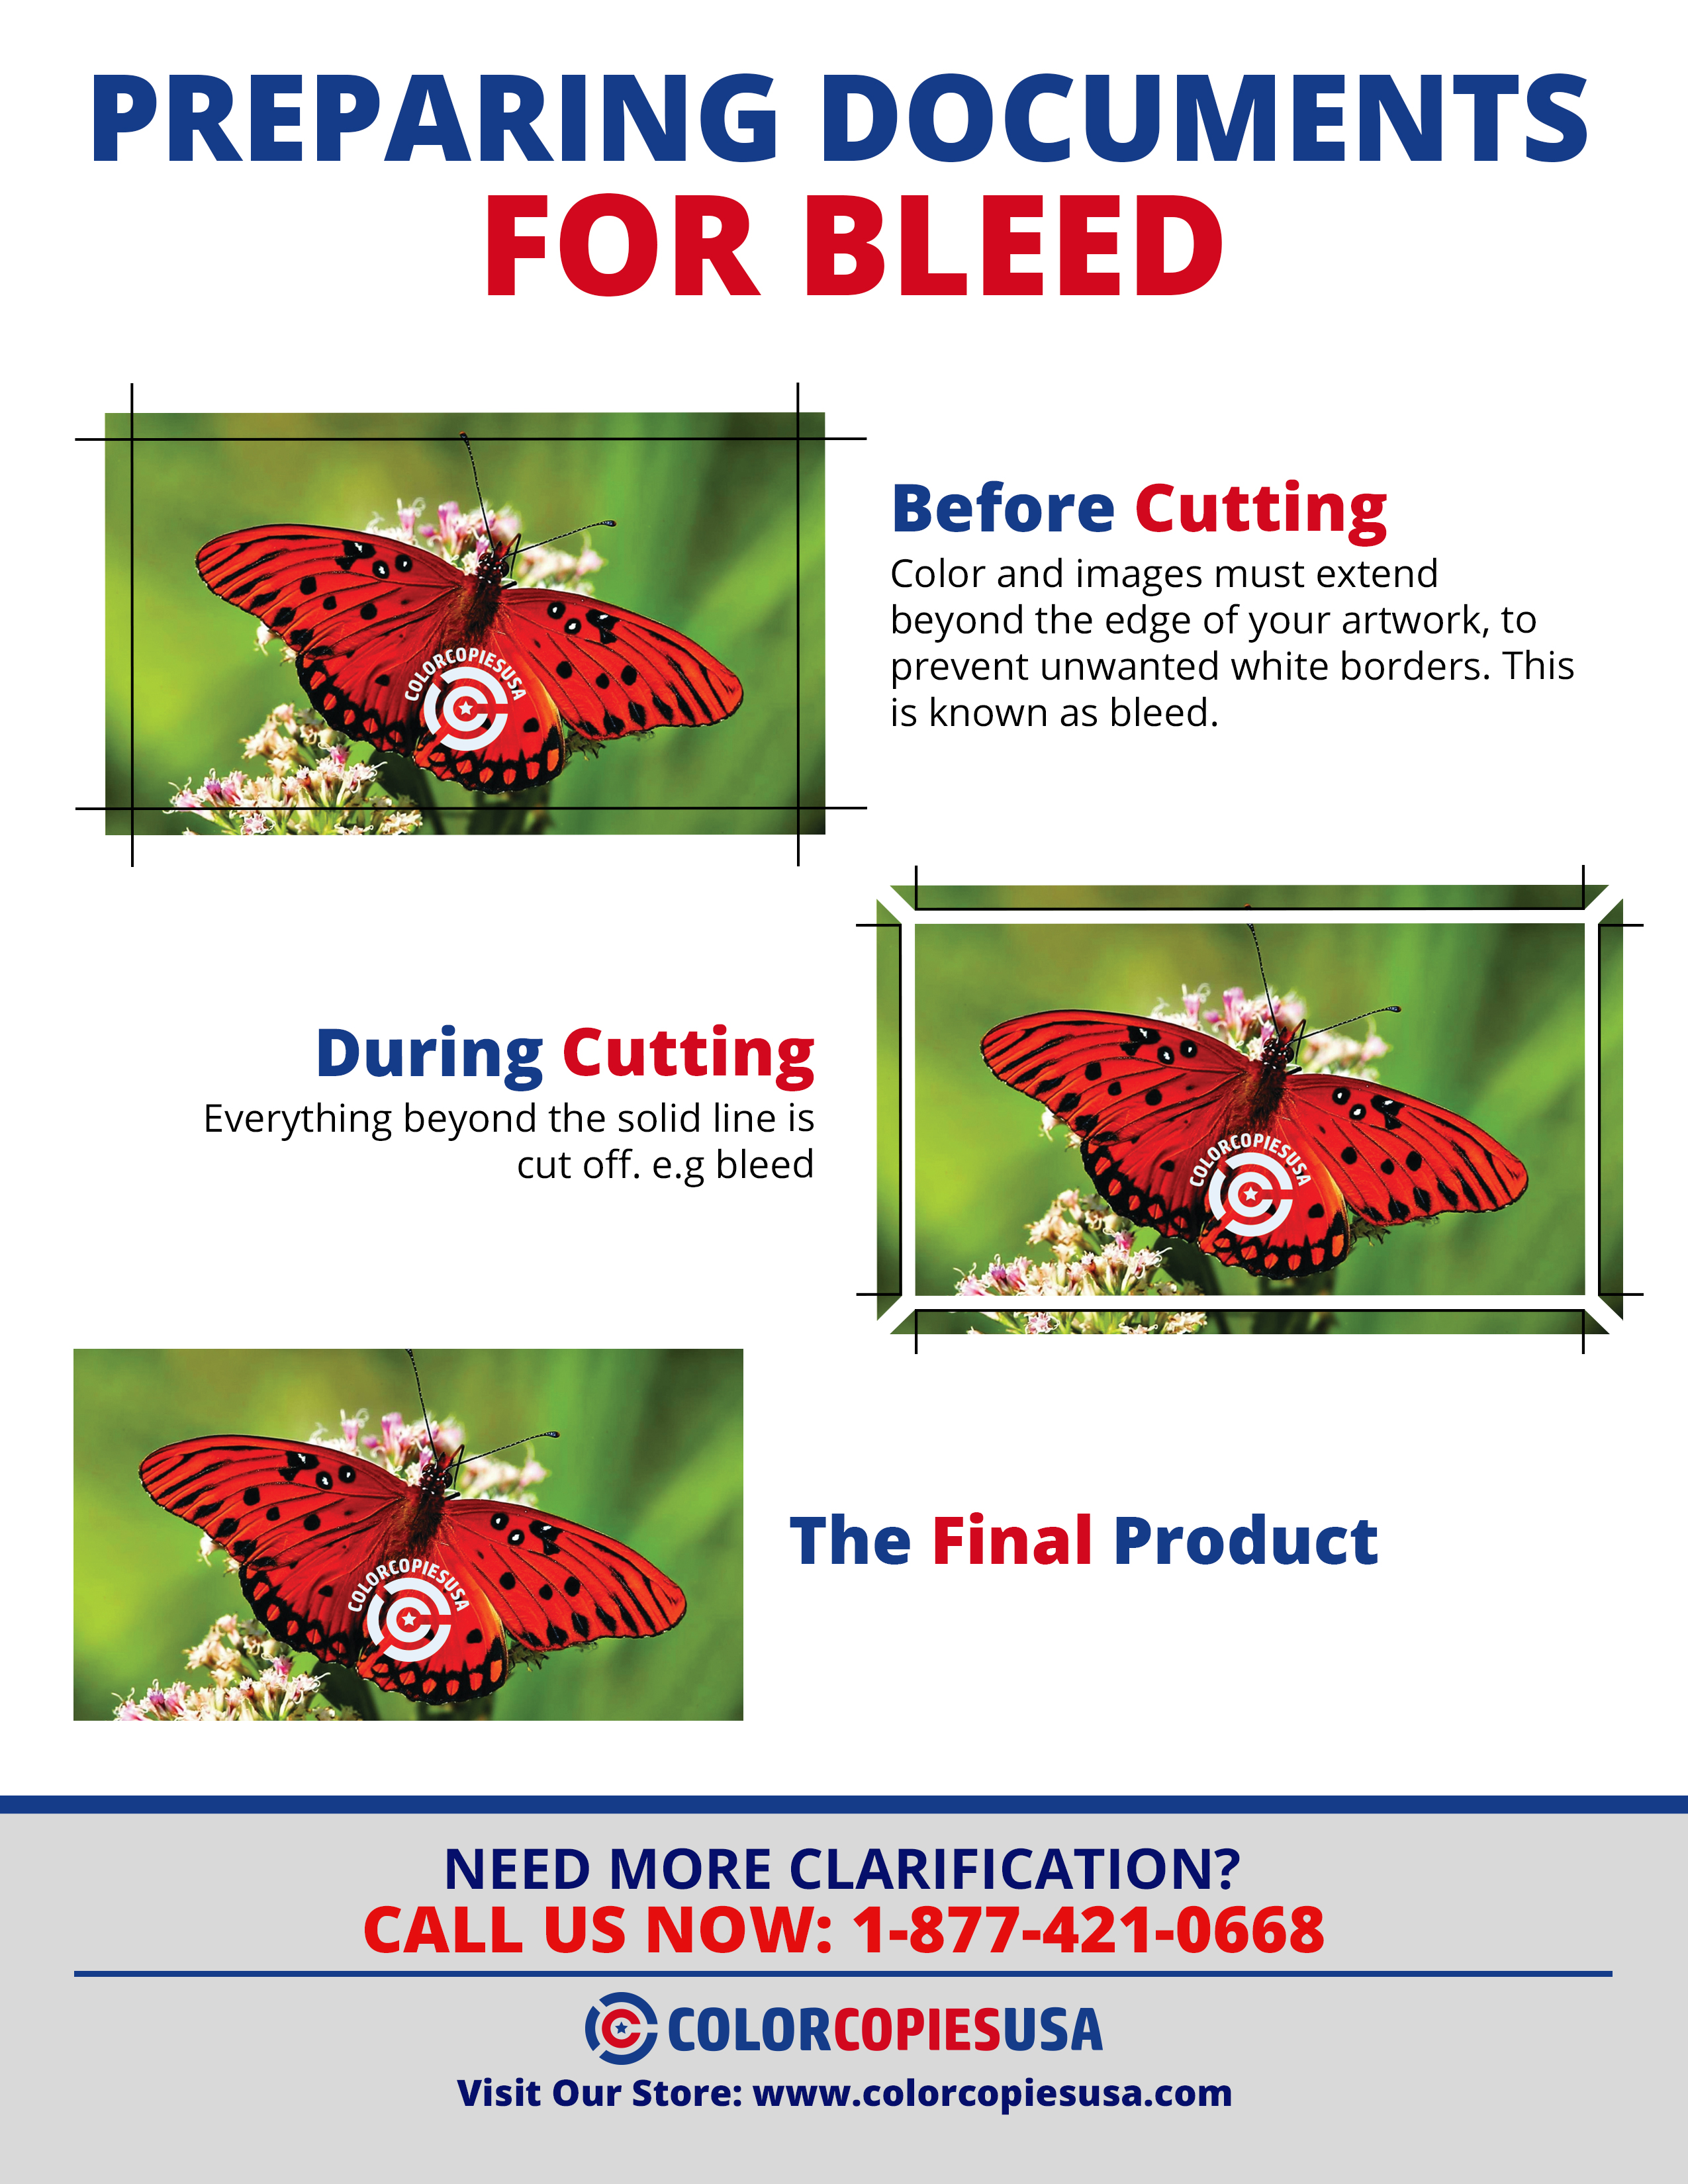 On this infographic image you can see the steps required to produce a bleed printing document. Full Bleed printing requires to print substrate in excess, trim and cut, and finally enjoy the final product at the right trim size. There are graphics demonstrating all of the requirements